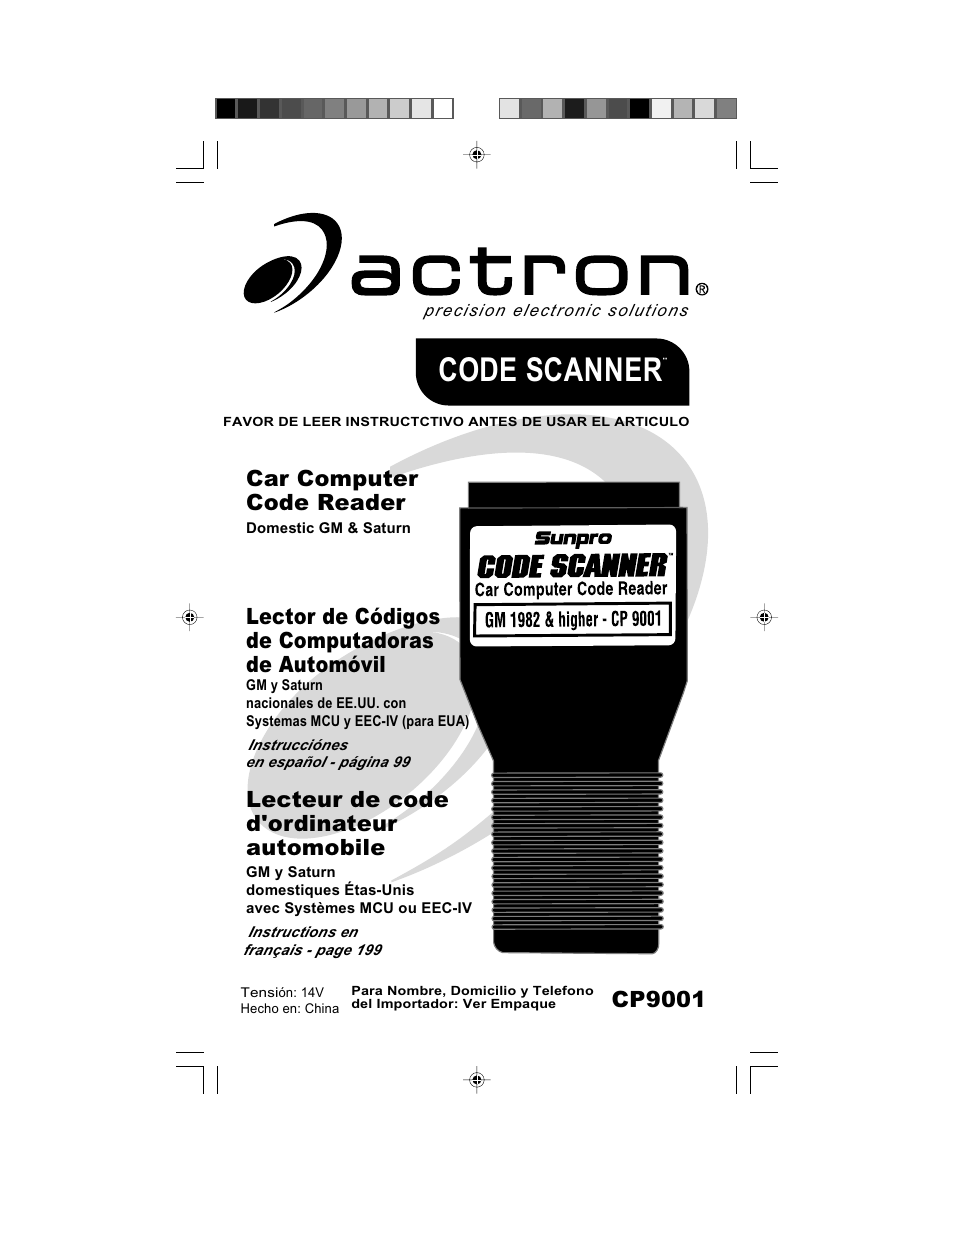 Actron GM Code Scanner CP9001 User Manual | 98 pages